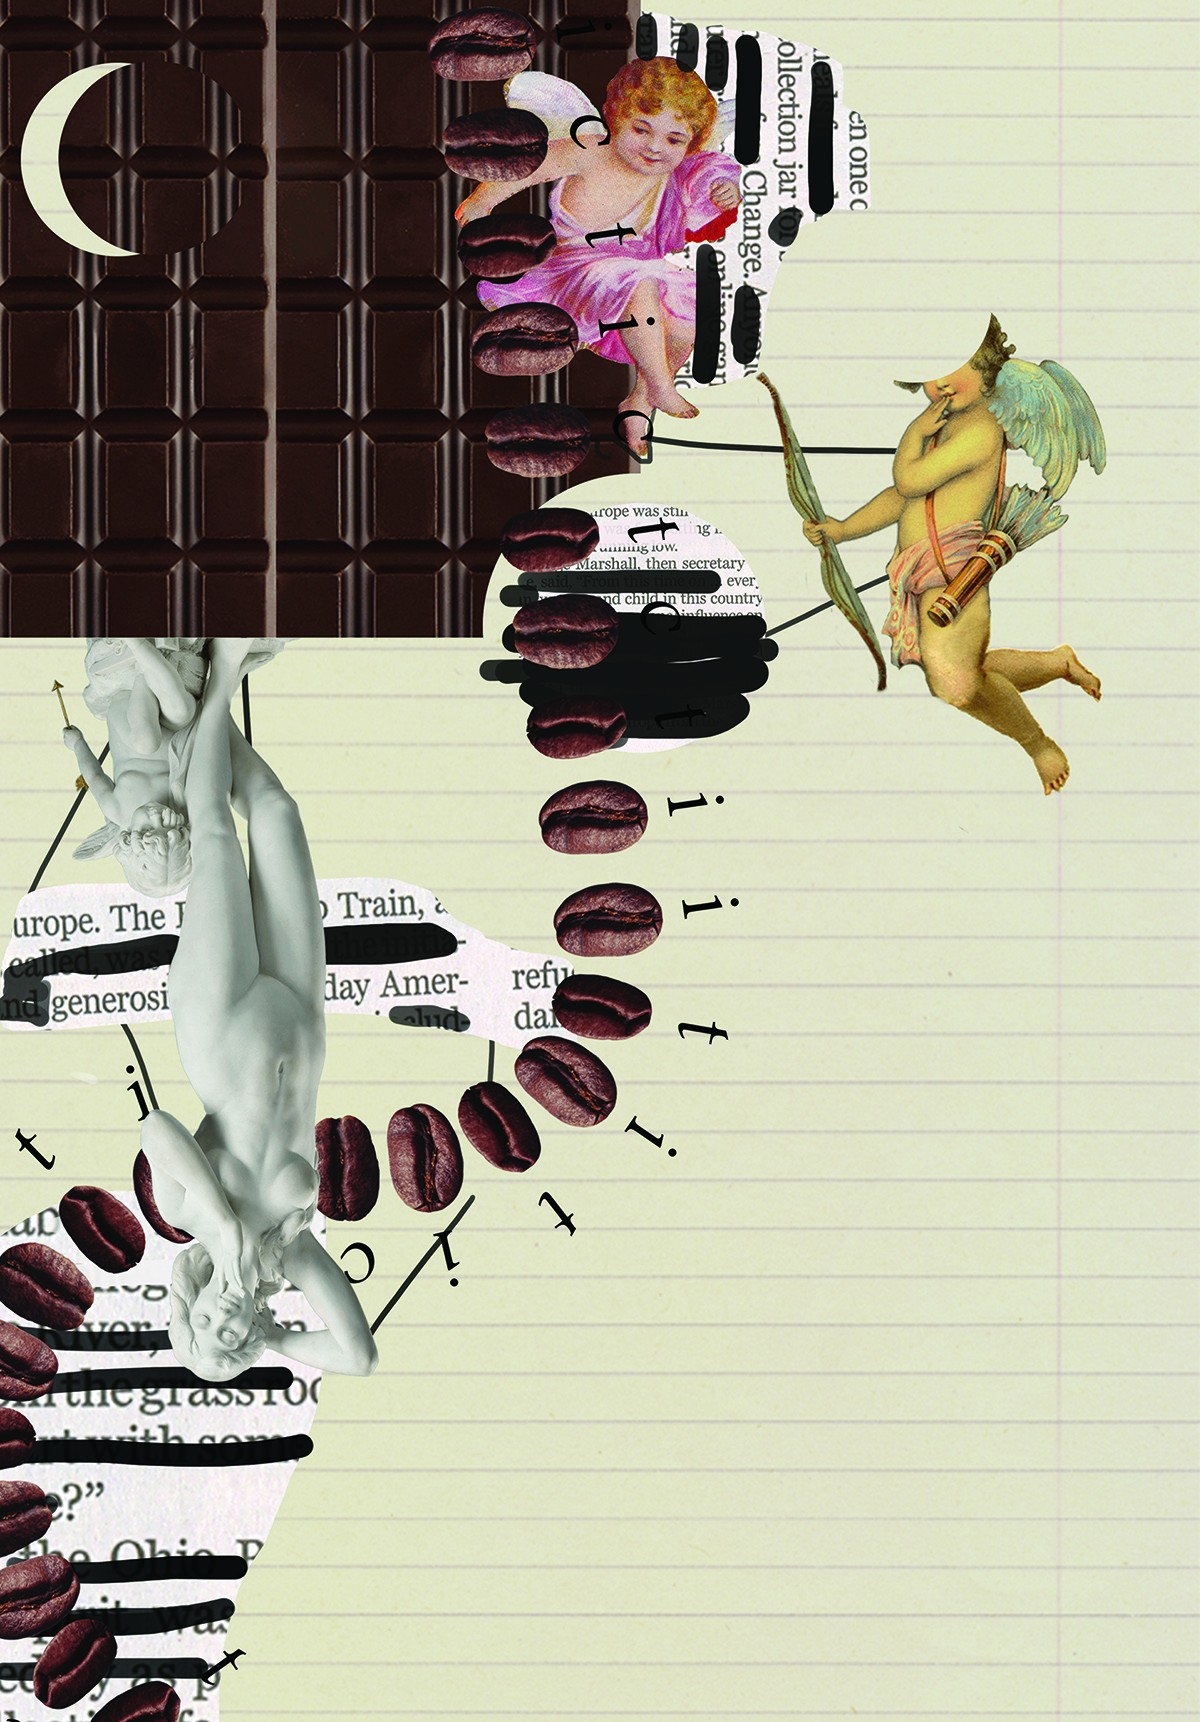 Collage including cherubs, chocolate bar, marble statue, coffee beans, and ruled notebook paper.